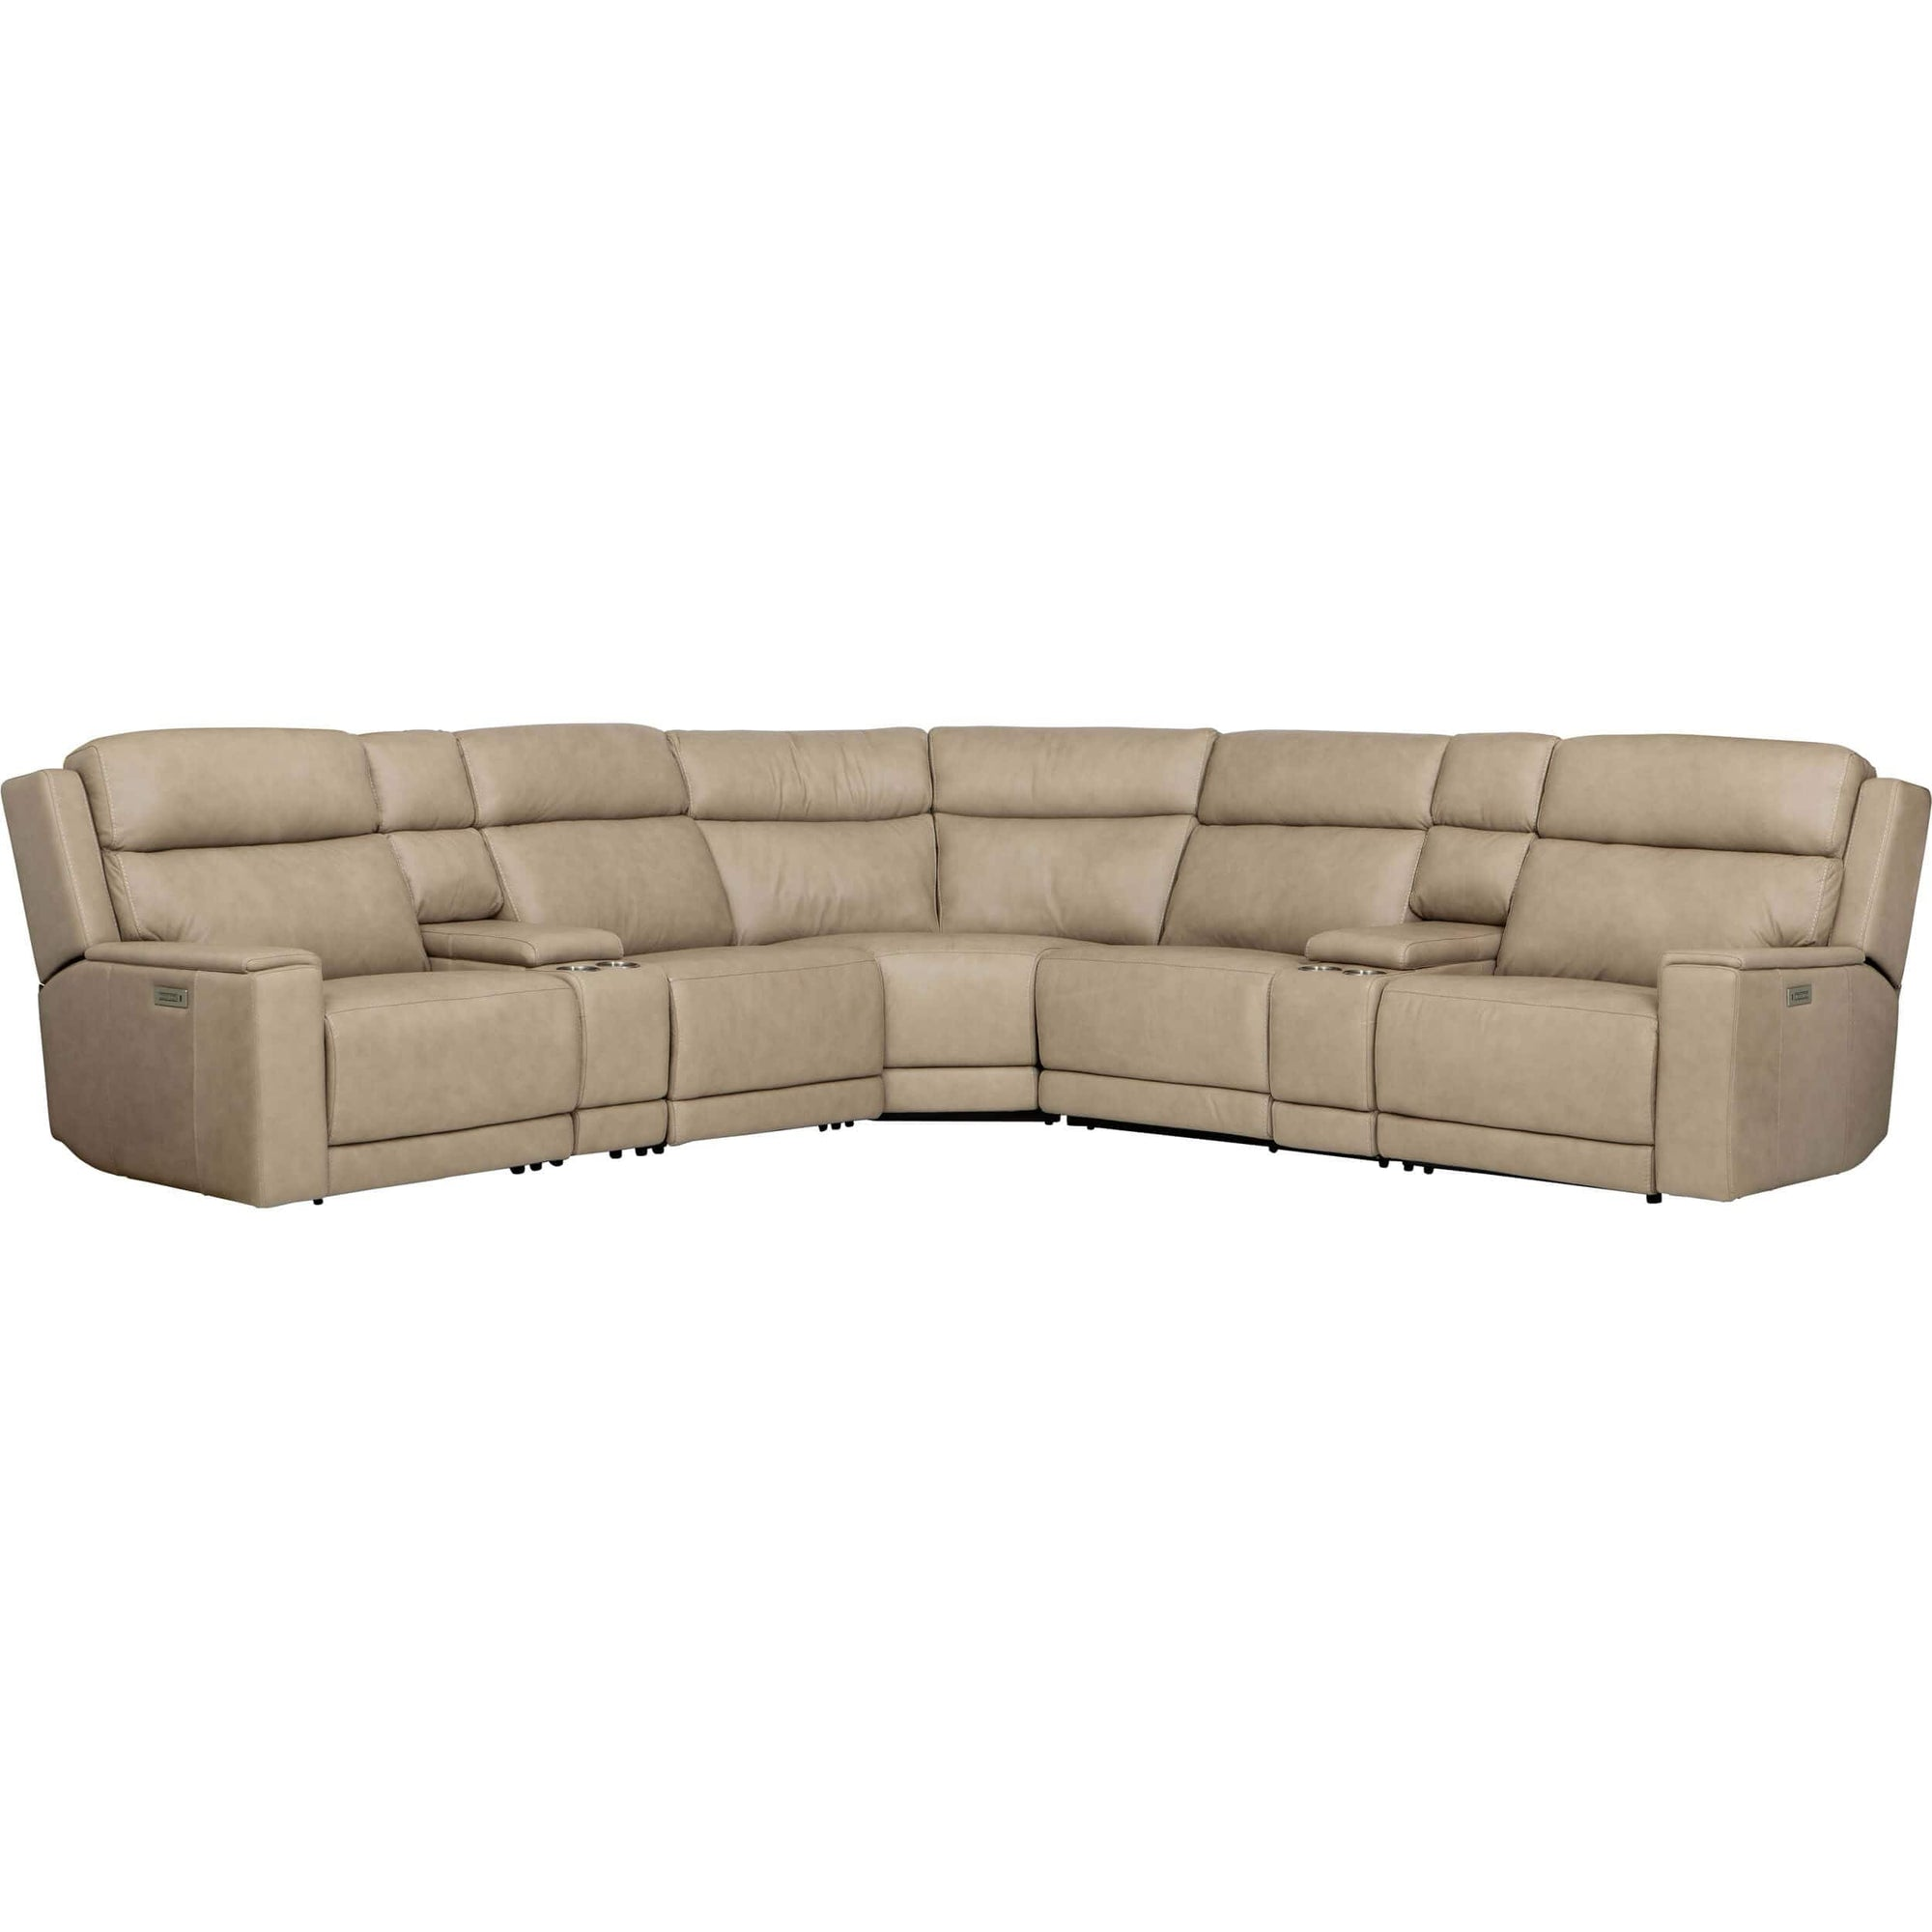 Marvelous Emerson Sectional High Fashion Home Download Free Architecture Designs Rallybritishbridgeorg